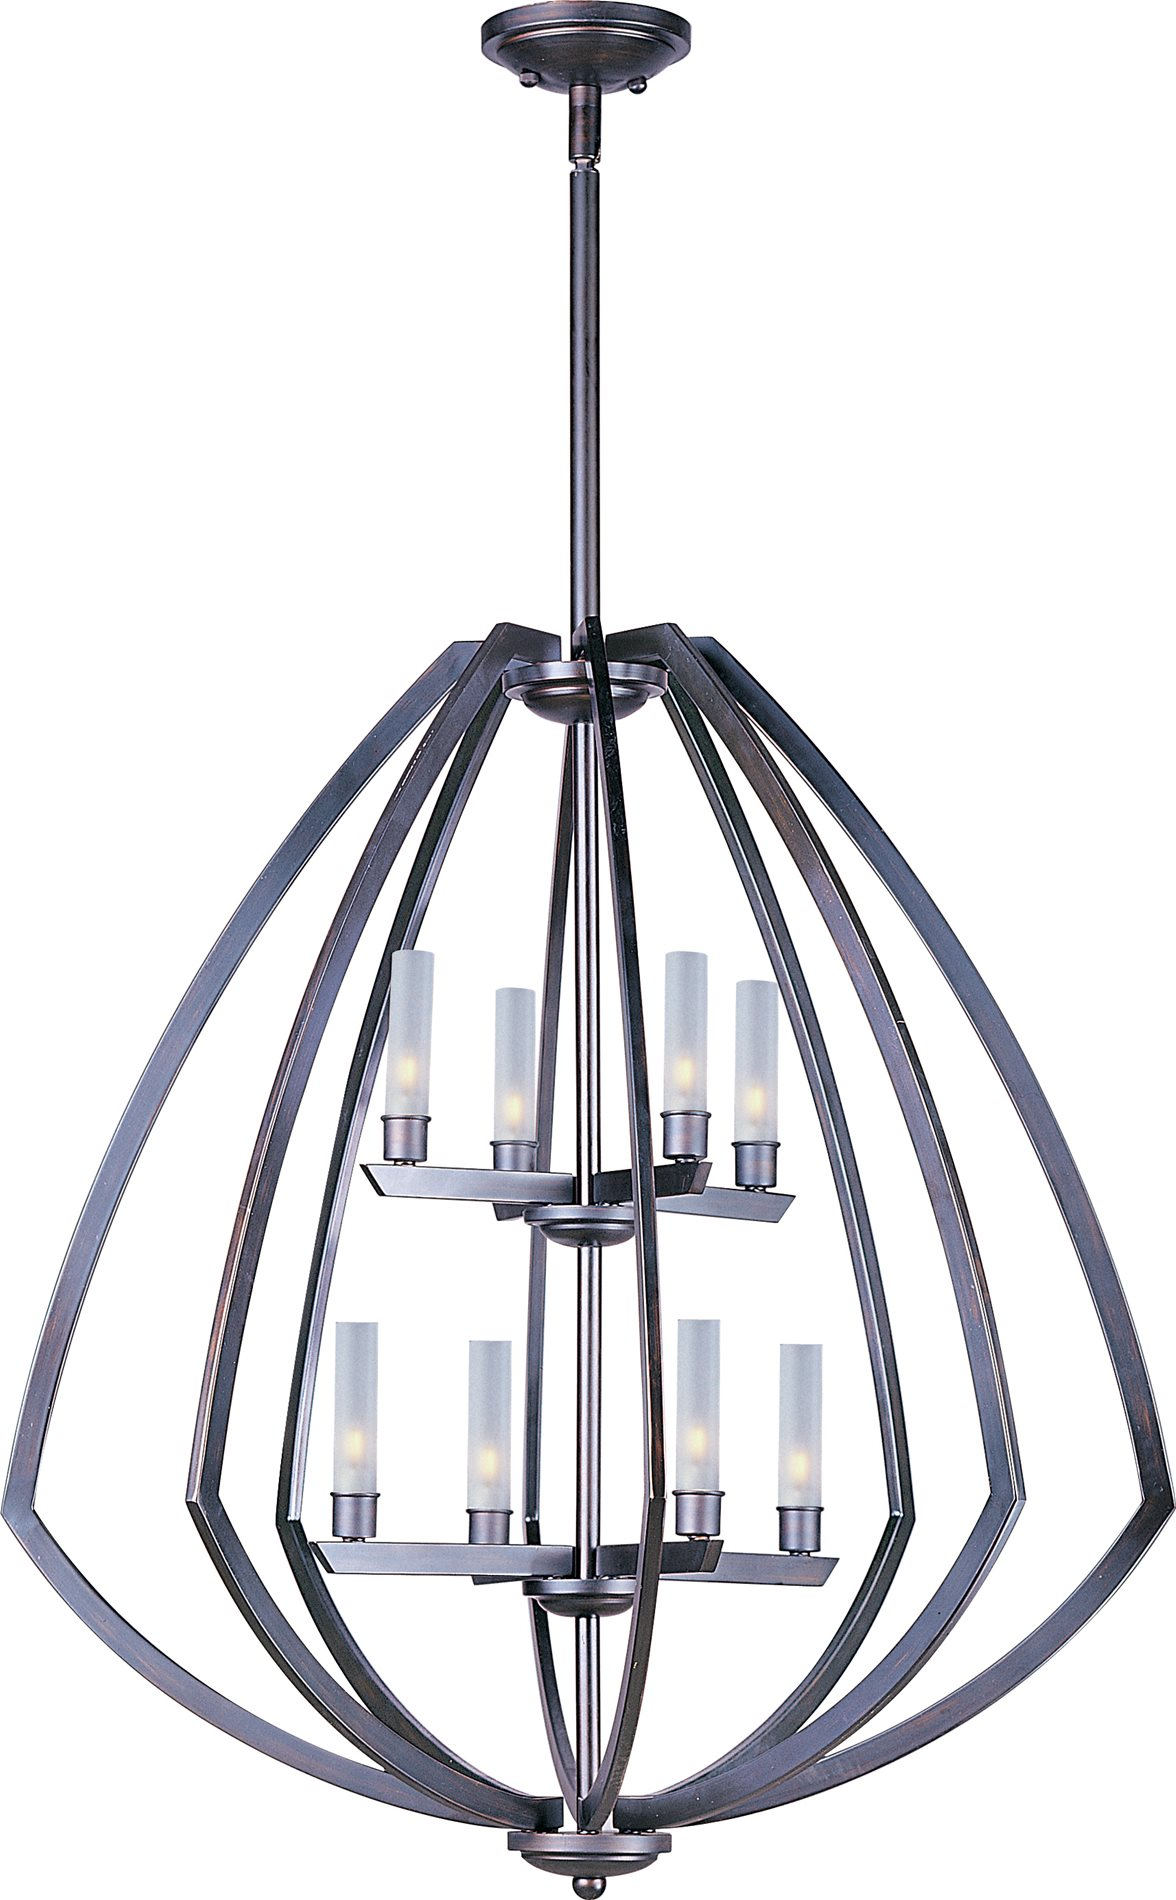 Modern Contemporary Foyer Lighting : Et e oi vortex adjustable modern contemporary